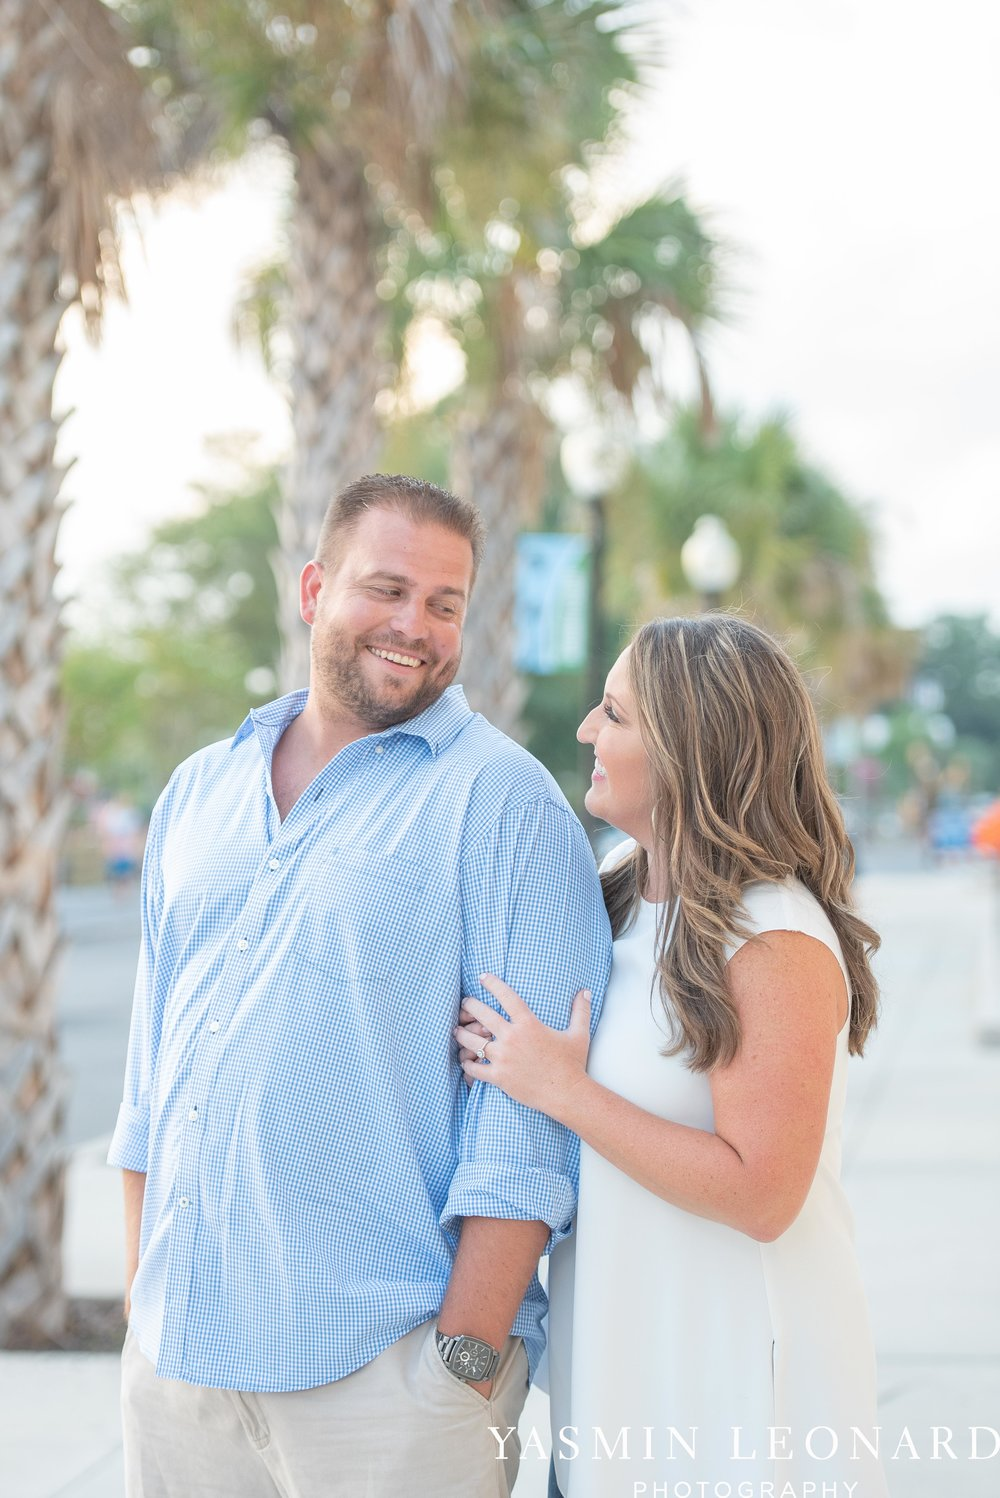 Wrightsville Beach Engagement Session - Wilmington Engagement Session - Downtown Wilmington Engagement Session - NC Weddings - Wilmington NC - Yasmin Leonard Photography-6.jpg